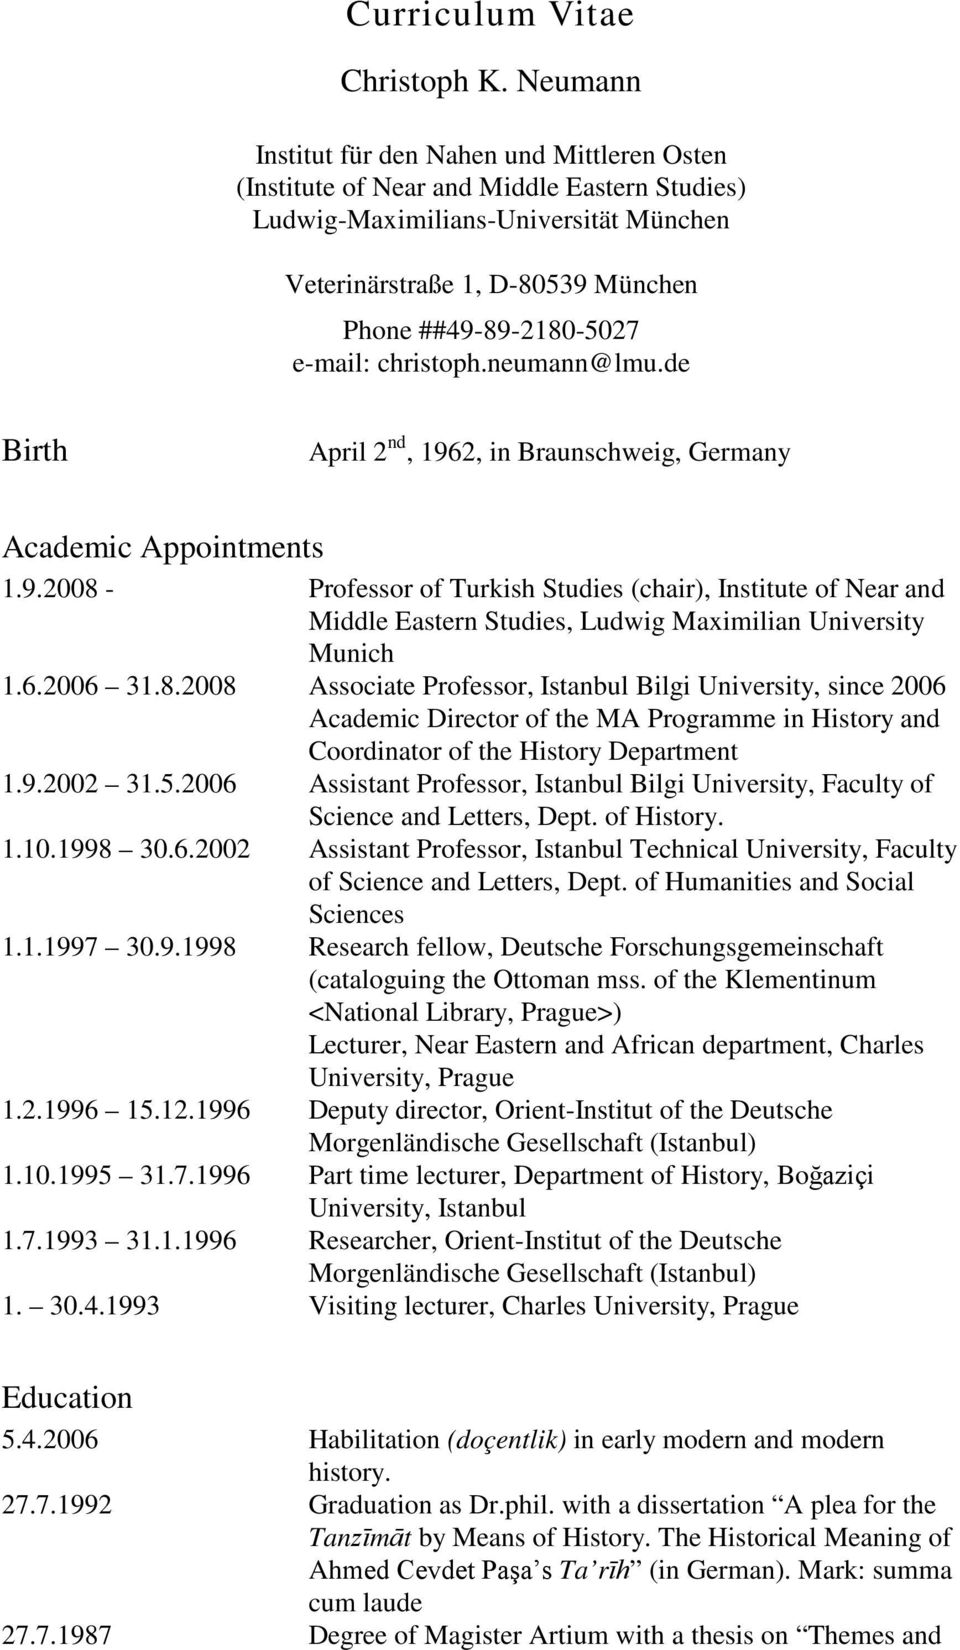 e-mail: christoph.neumann@lmu.de Birth April 2 nd, 1962, in Braunschweig, Germany Academic Appointments 1.9.2008 - Professor of Turkish Studies (chair), Institute of Near and Middle Eastern Studies, Ludwig Maximilian University Munich 1.